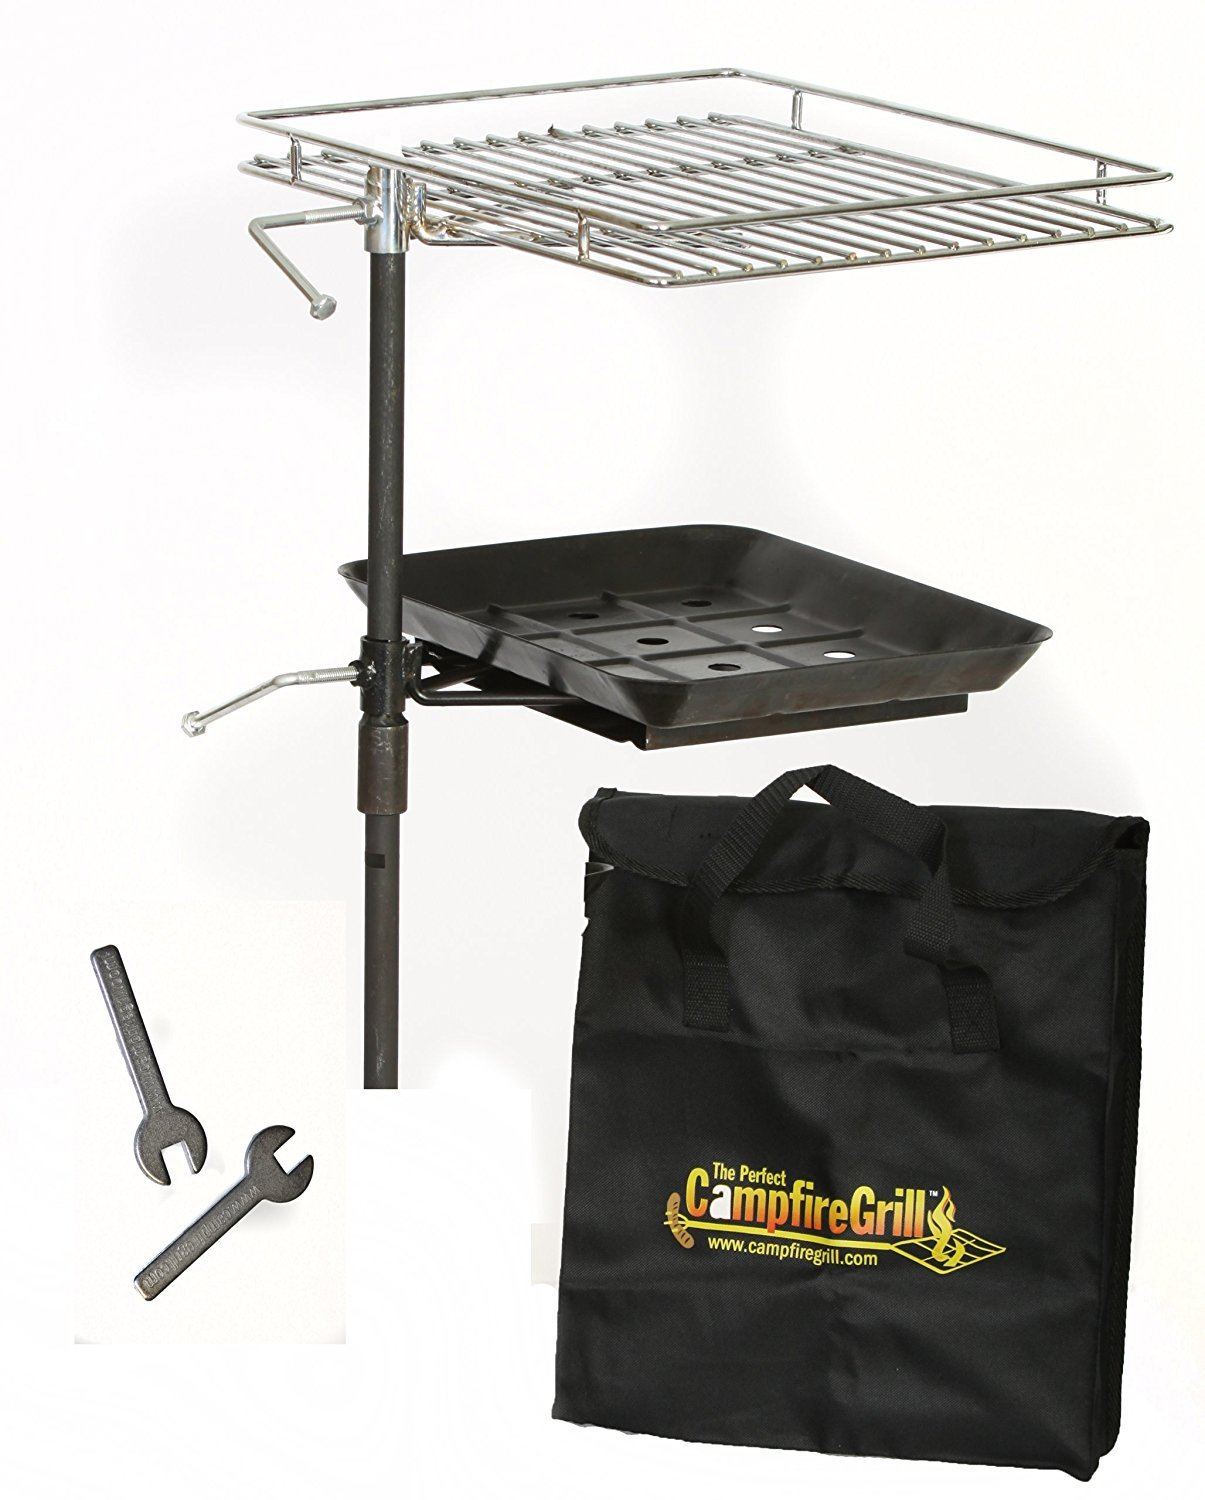 The Perfect CampfireGrill Rebel Grill, 10 Inches by 12 Inches [並行輸入品]   B011BH2KR6